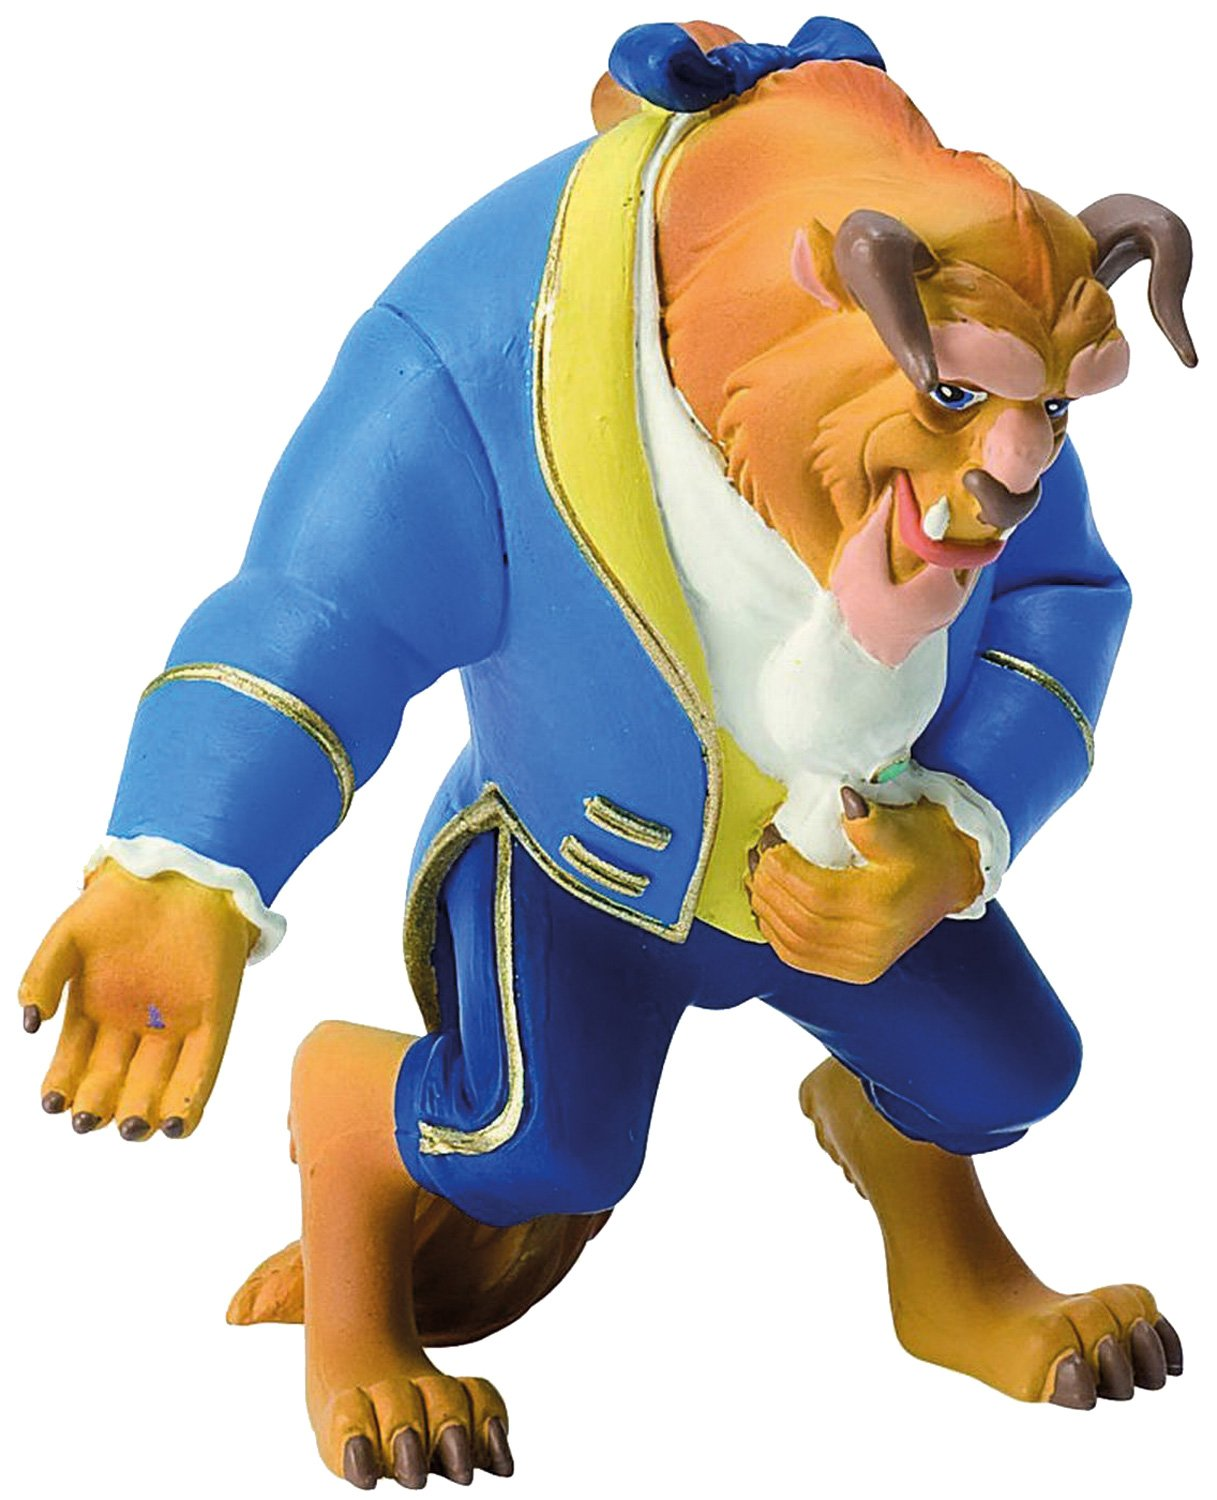 Bullyland Beast Action Figure C /& J Direct GmbH /& Co KG 12463 B000XPEI0A